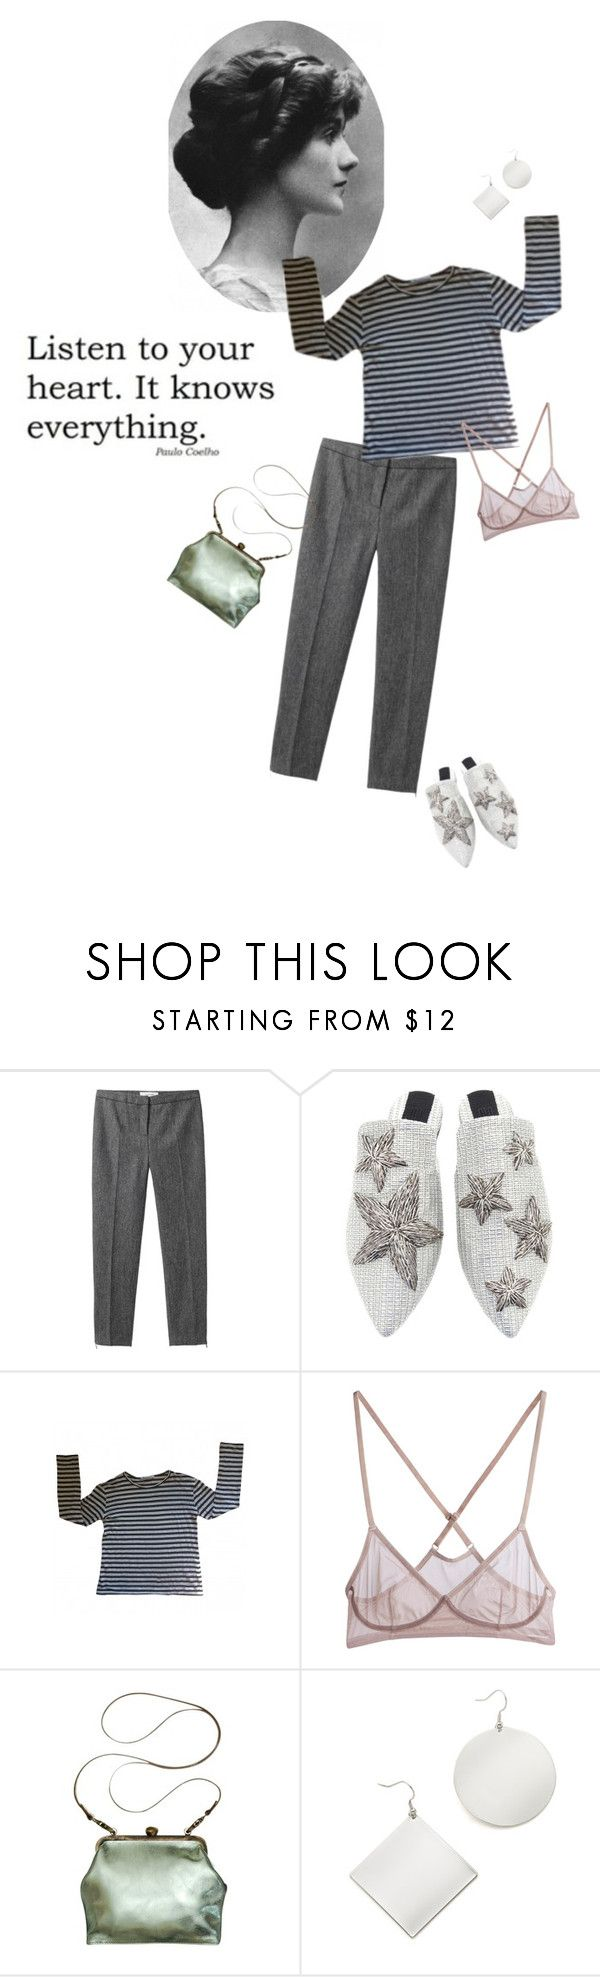 """Écoute ton cœur"" by tasteofbliss ❤ liked on Polyvore featuring Chanel, Grey Line By Hussein Chalayan, Sanayi 313, T By Alexander Wang, Mimi Berry and Kenneth Jay Lane"